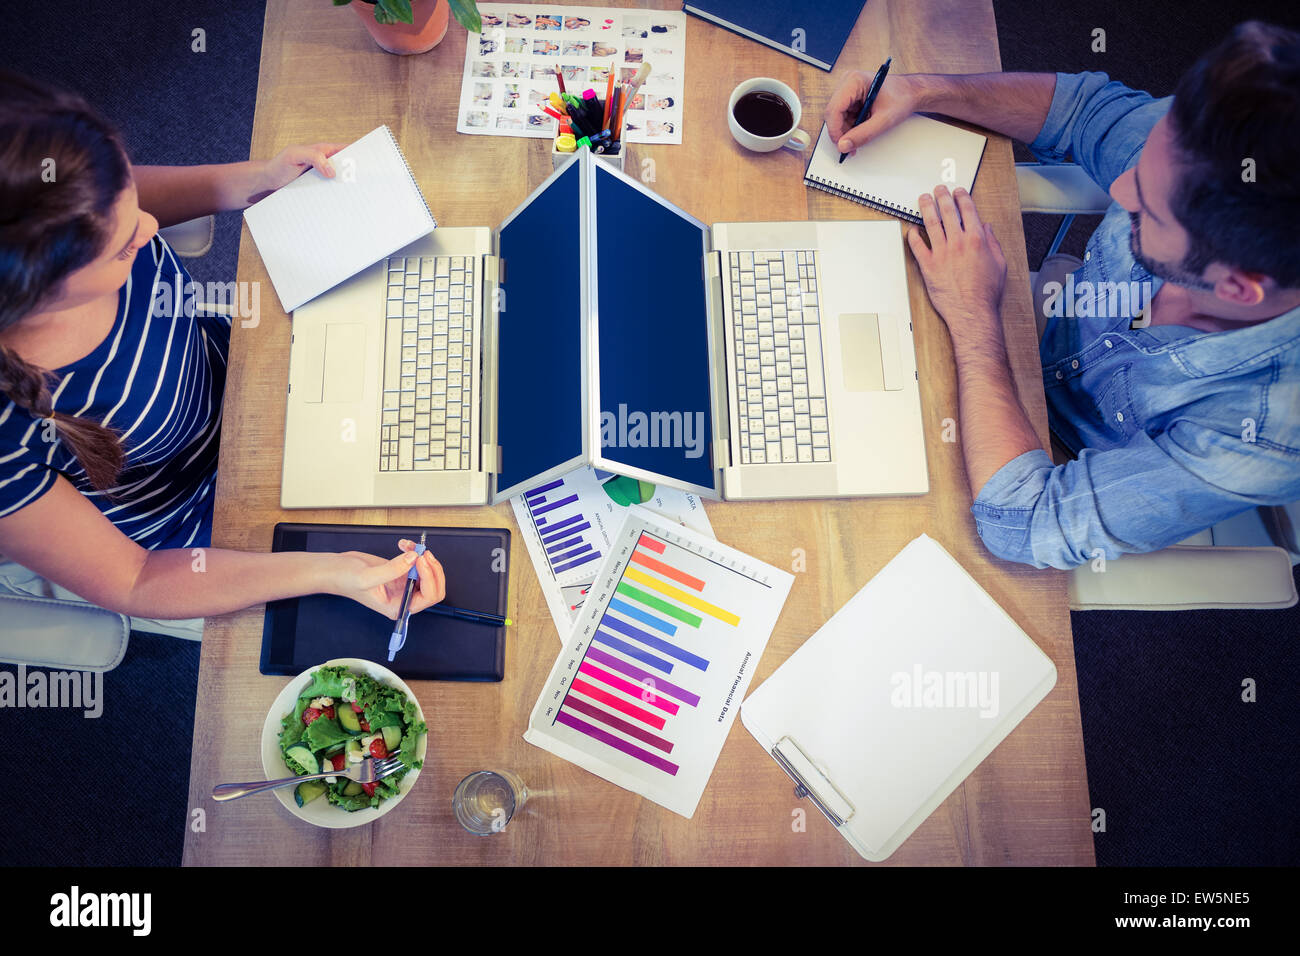 Happy creative workers sharing desk - Stock Image